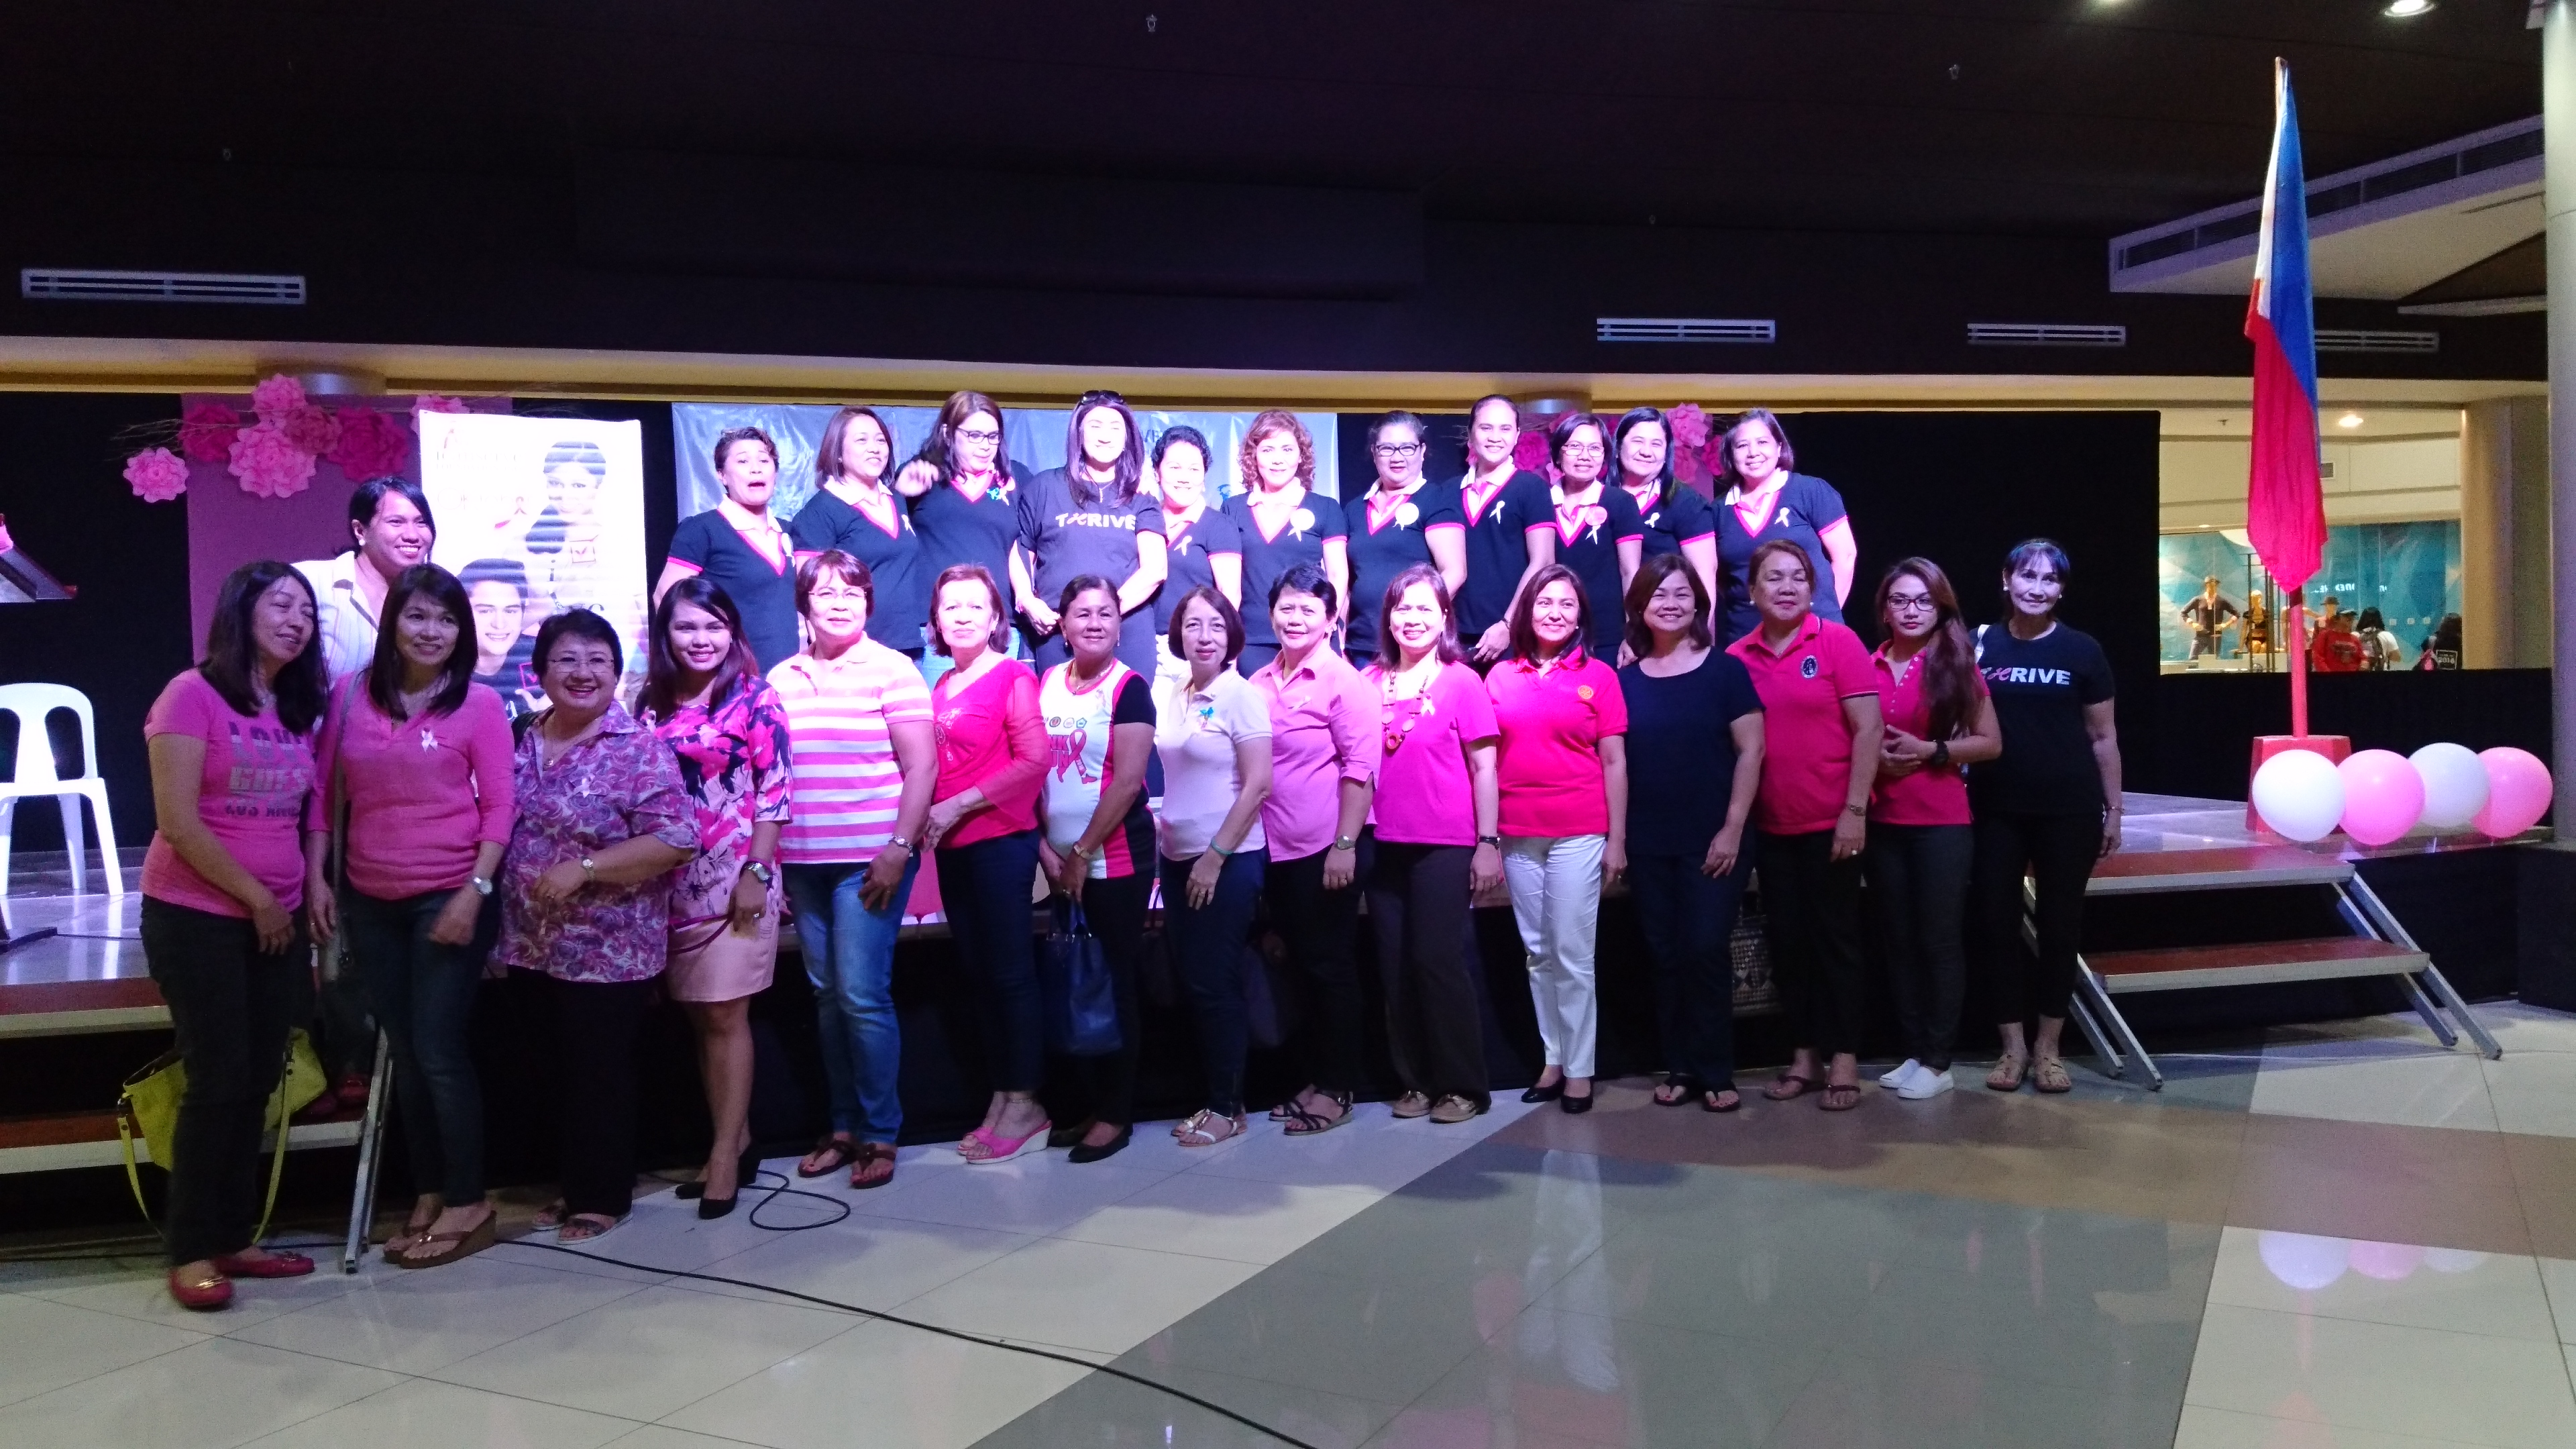 ICanServe Foundation's OKtober: A Free Breast Cancer Forum in Honor of Breast Cancer Awareness Month